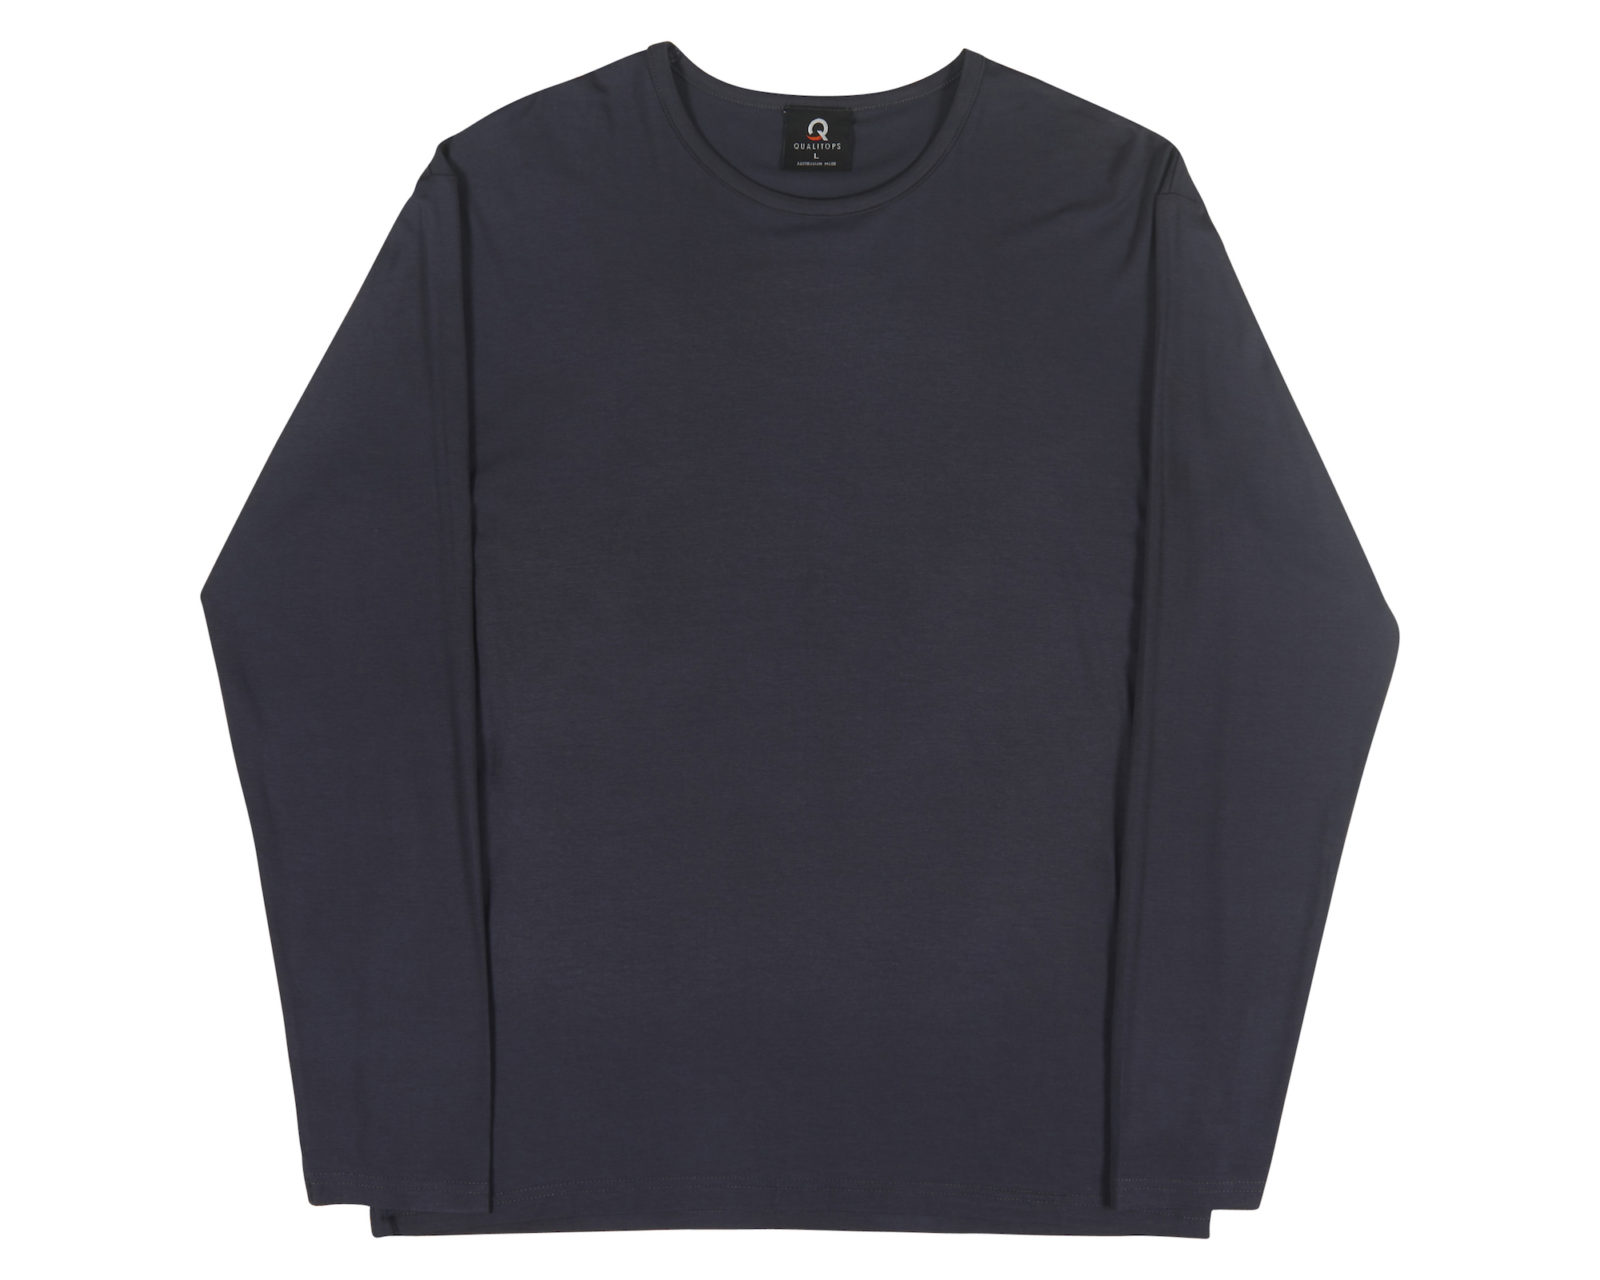 Qualitops Mens Long Sleeve Tee Bamboo Lycra Australian made clothing